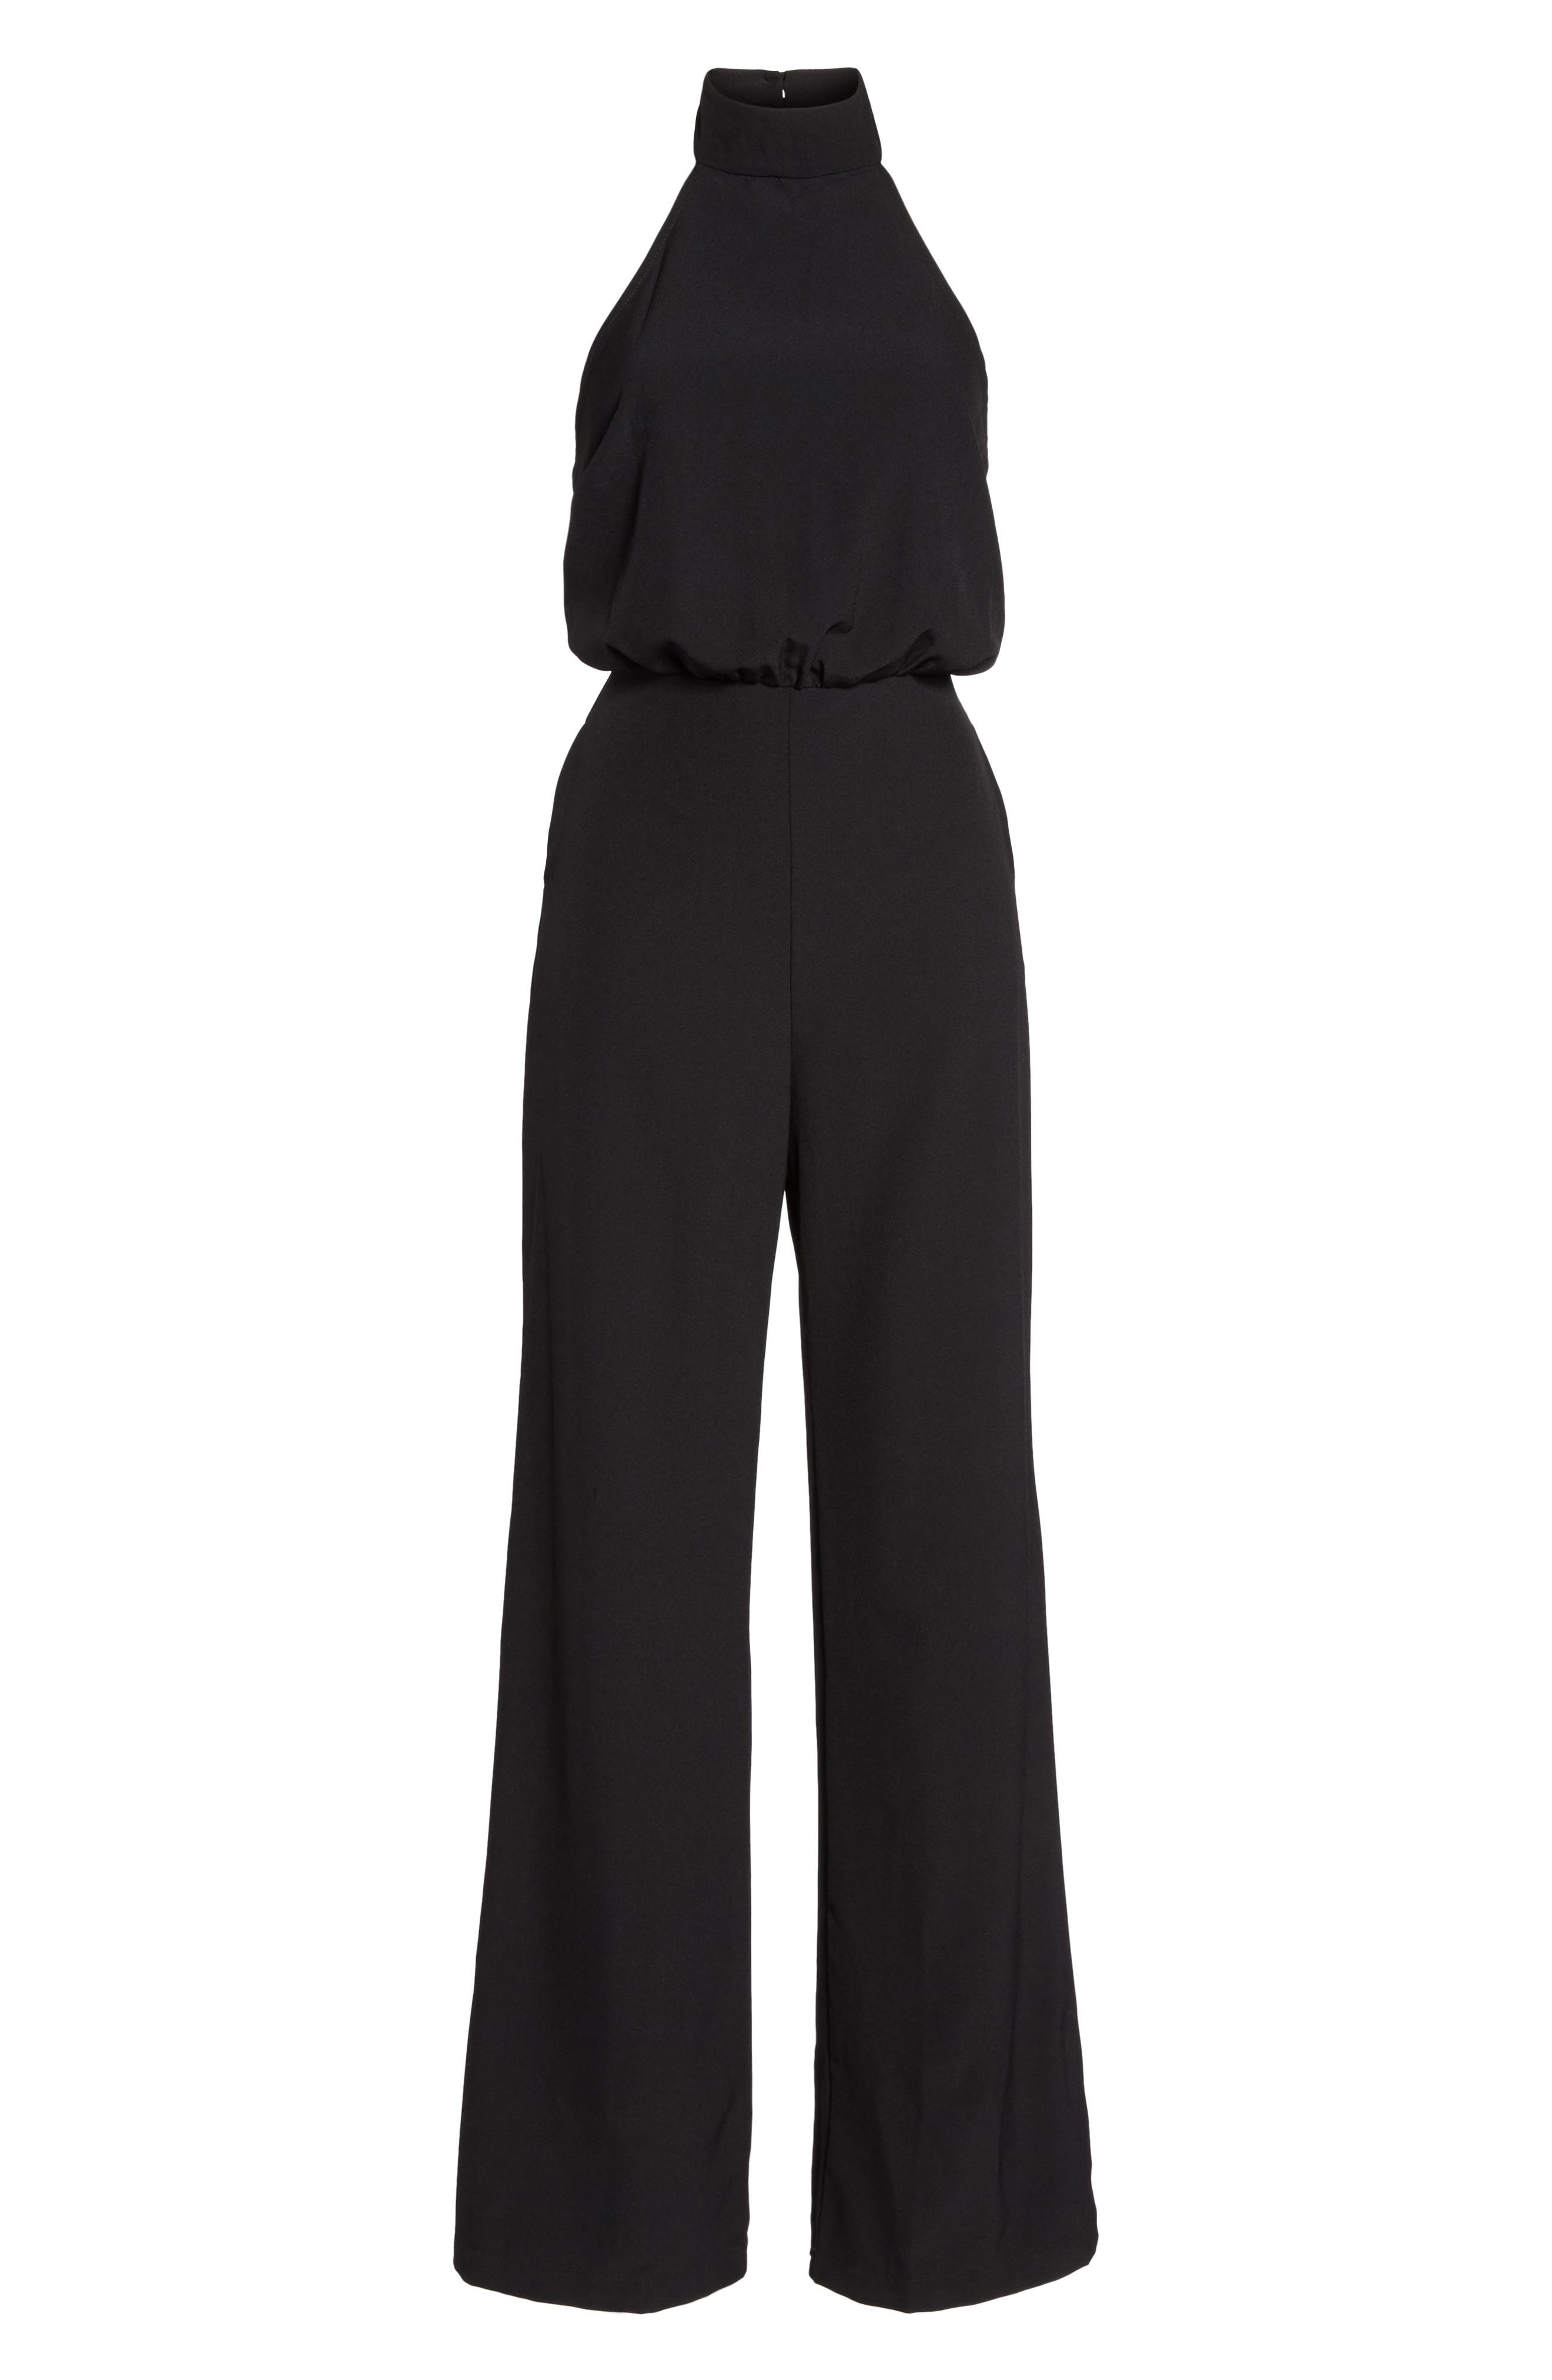 Moment for Life Halter Jumpsuit,                             Alternate thumbnail 7, color,                             BLACK